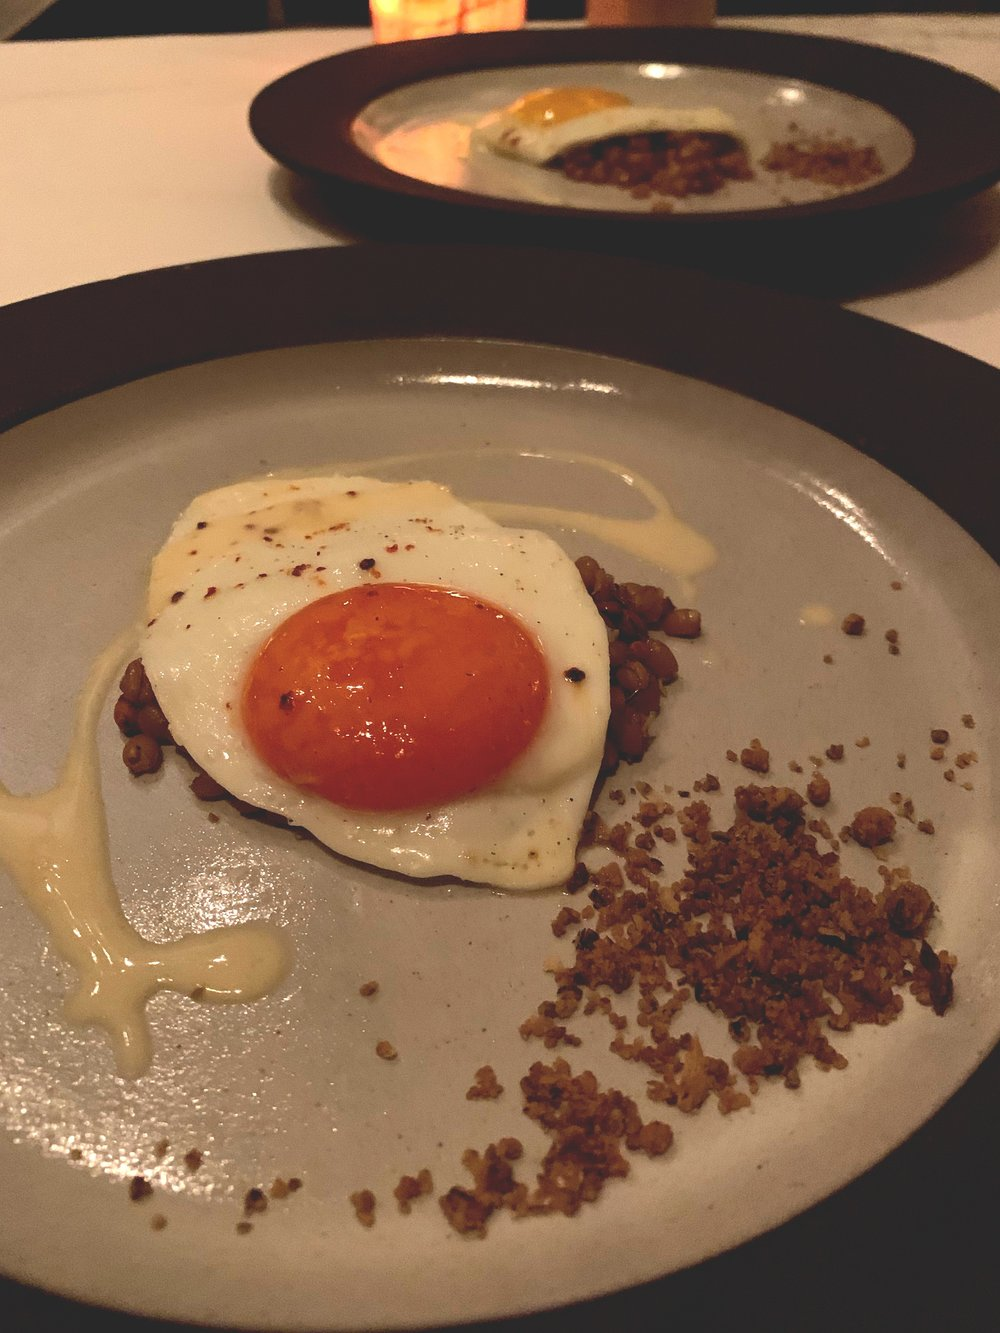 "Red Pepper egg, Nash's Rye, and Cheddar - A few dishes before this, a chef walks out and says that we are going to play a game. Some of the hens on the farm had been feed grains with red pepper, turning their yolks red. This was done in an effort to prove ""you are what you eat.""Two raw, shelled eggs were presented, and one had red yolk inside and one was regular. We were asked to pick an egg and brand it somehow with a Sharpie to show it was ours. I let Yvonne pick first, because i'm a gentlemen. She ended up picking the regular yellow egg, so I got to have the red pepper one. The flavor of this egg was so amazing, and the pairing with the rye and cheddar just blew me away.This was the outstanding dish of the night for me and the one that I thought epitomized Blue Hill the best. If you didn't know the story, you would think this is just an egg, but literally from the hen to the plate, every flavor was beautifully planned to the nth degree."